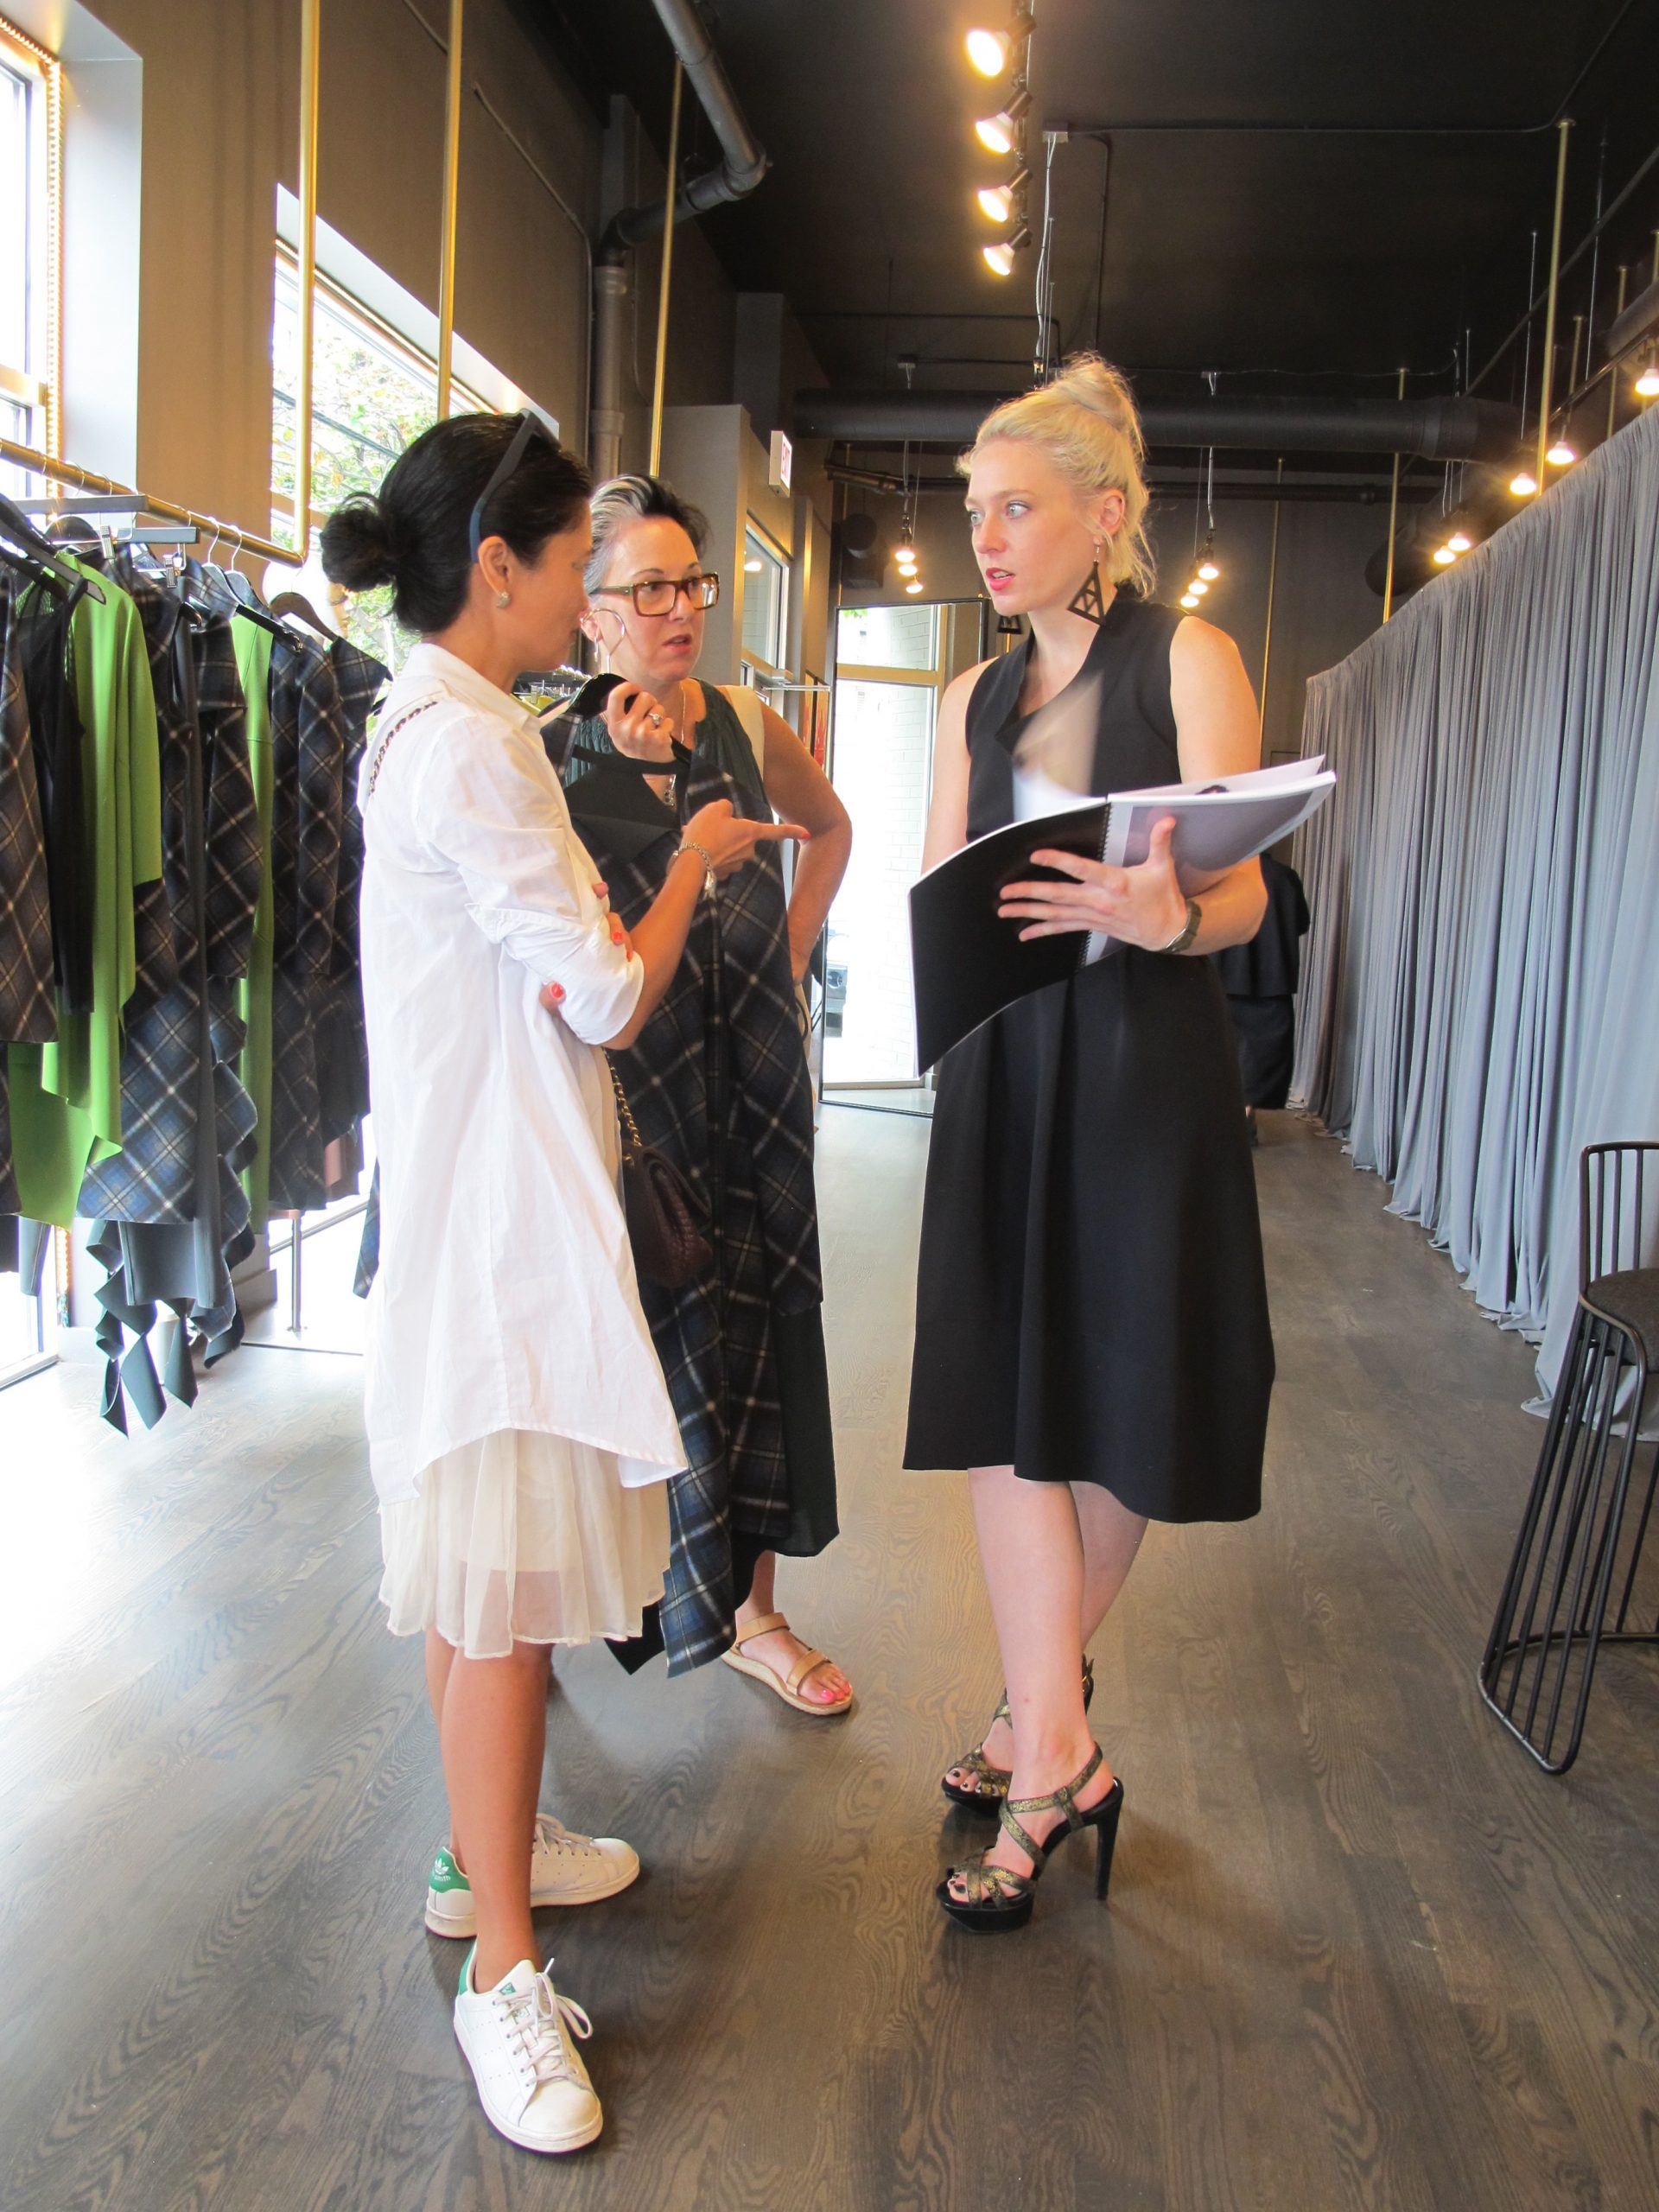 Stylists Arlene Matthews and Brandon Frein learn about the new fall collection.